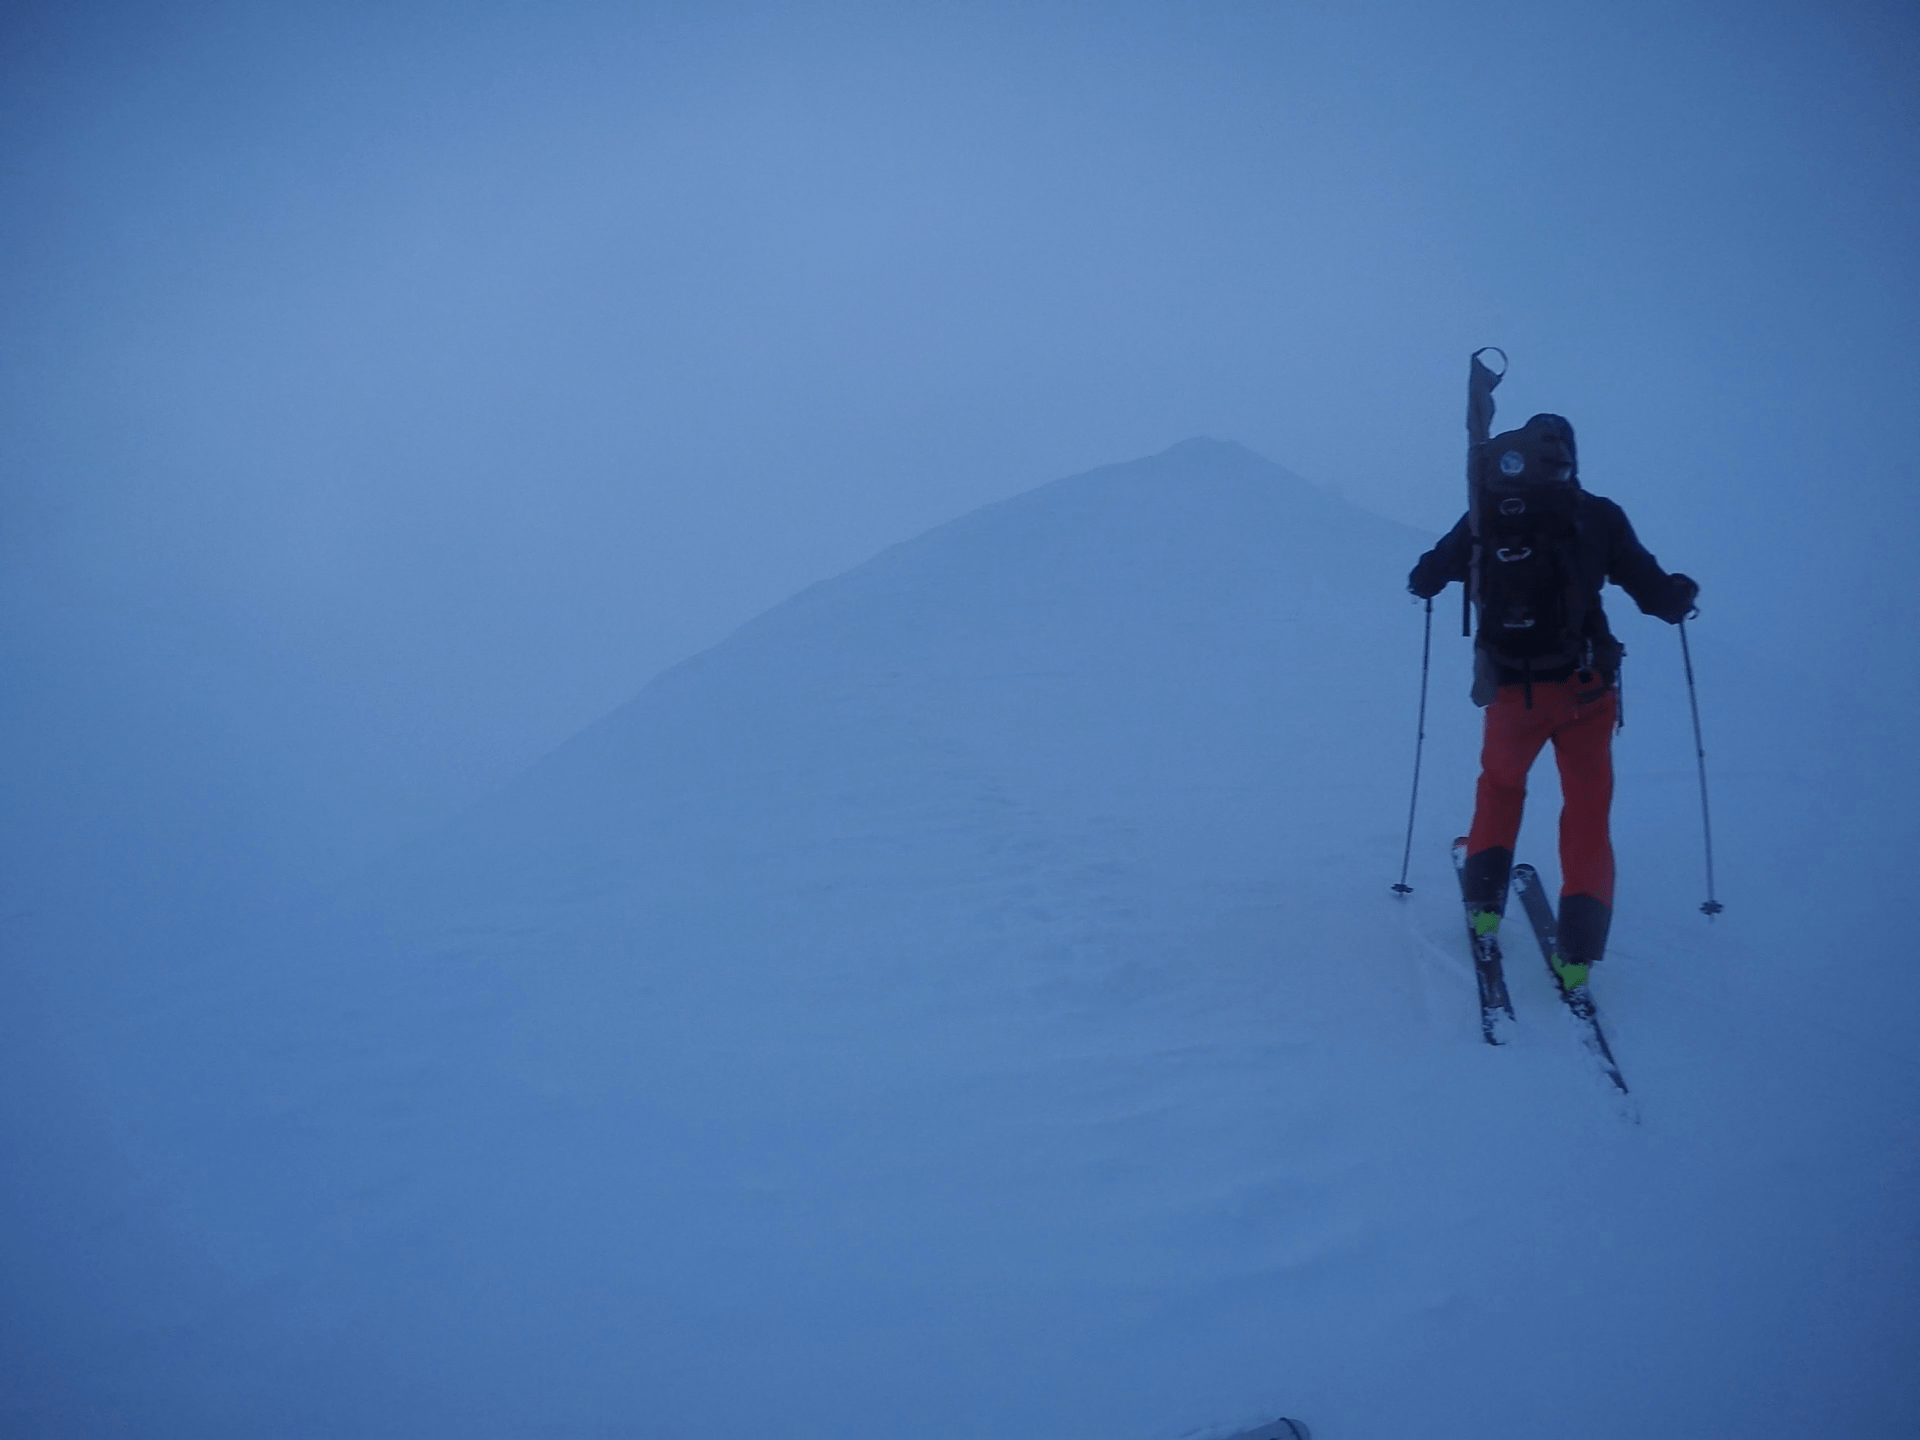 Person skiing in low-lighting